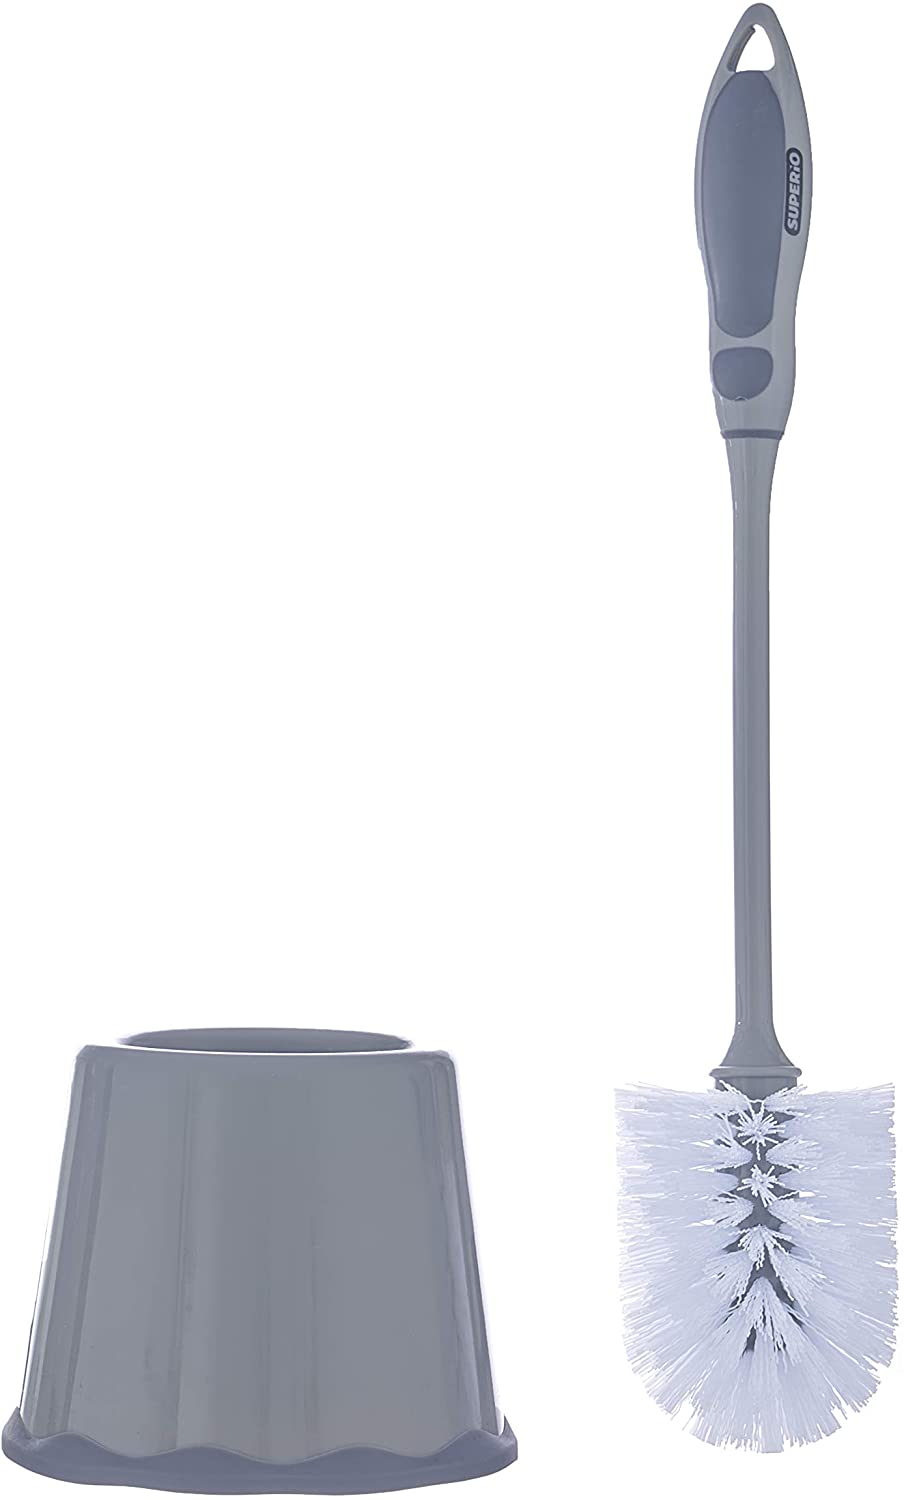 Superio Toilet Brush and Holder Grey